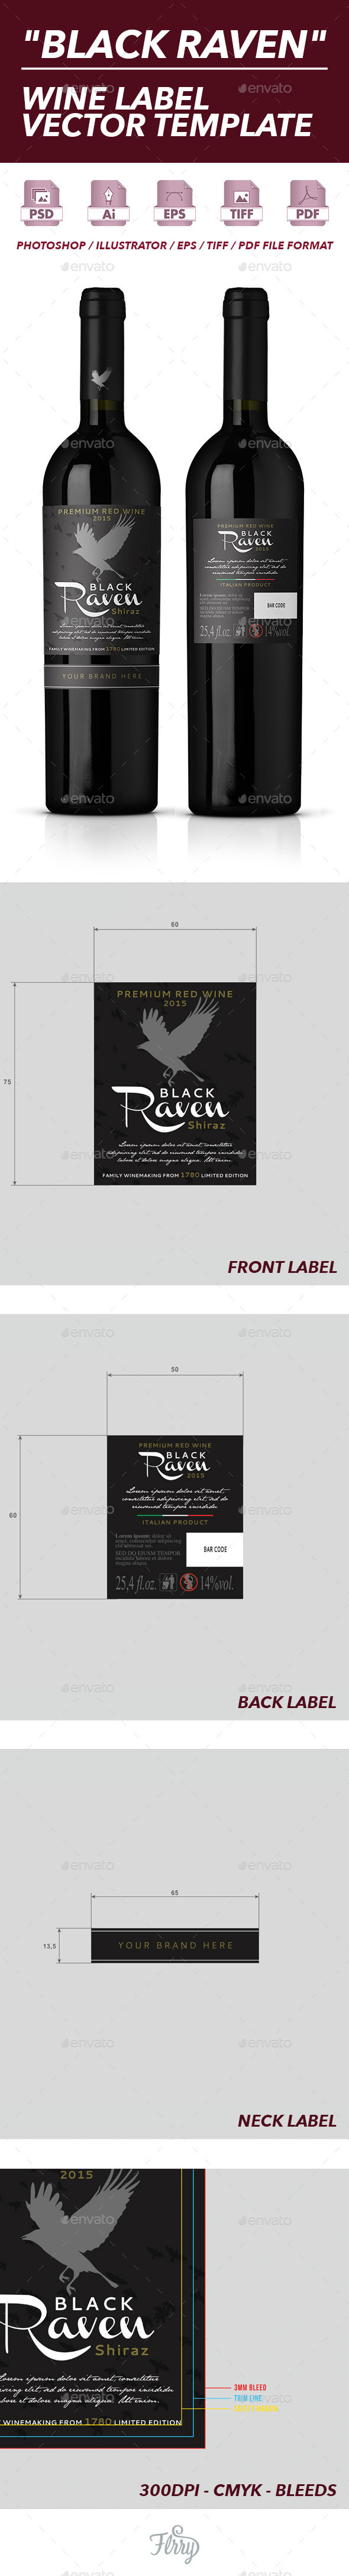 GraphicRiver Black Raven Wine Label Vector Template 10512547